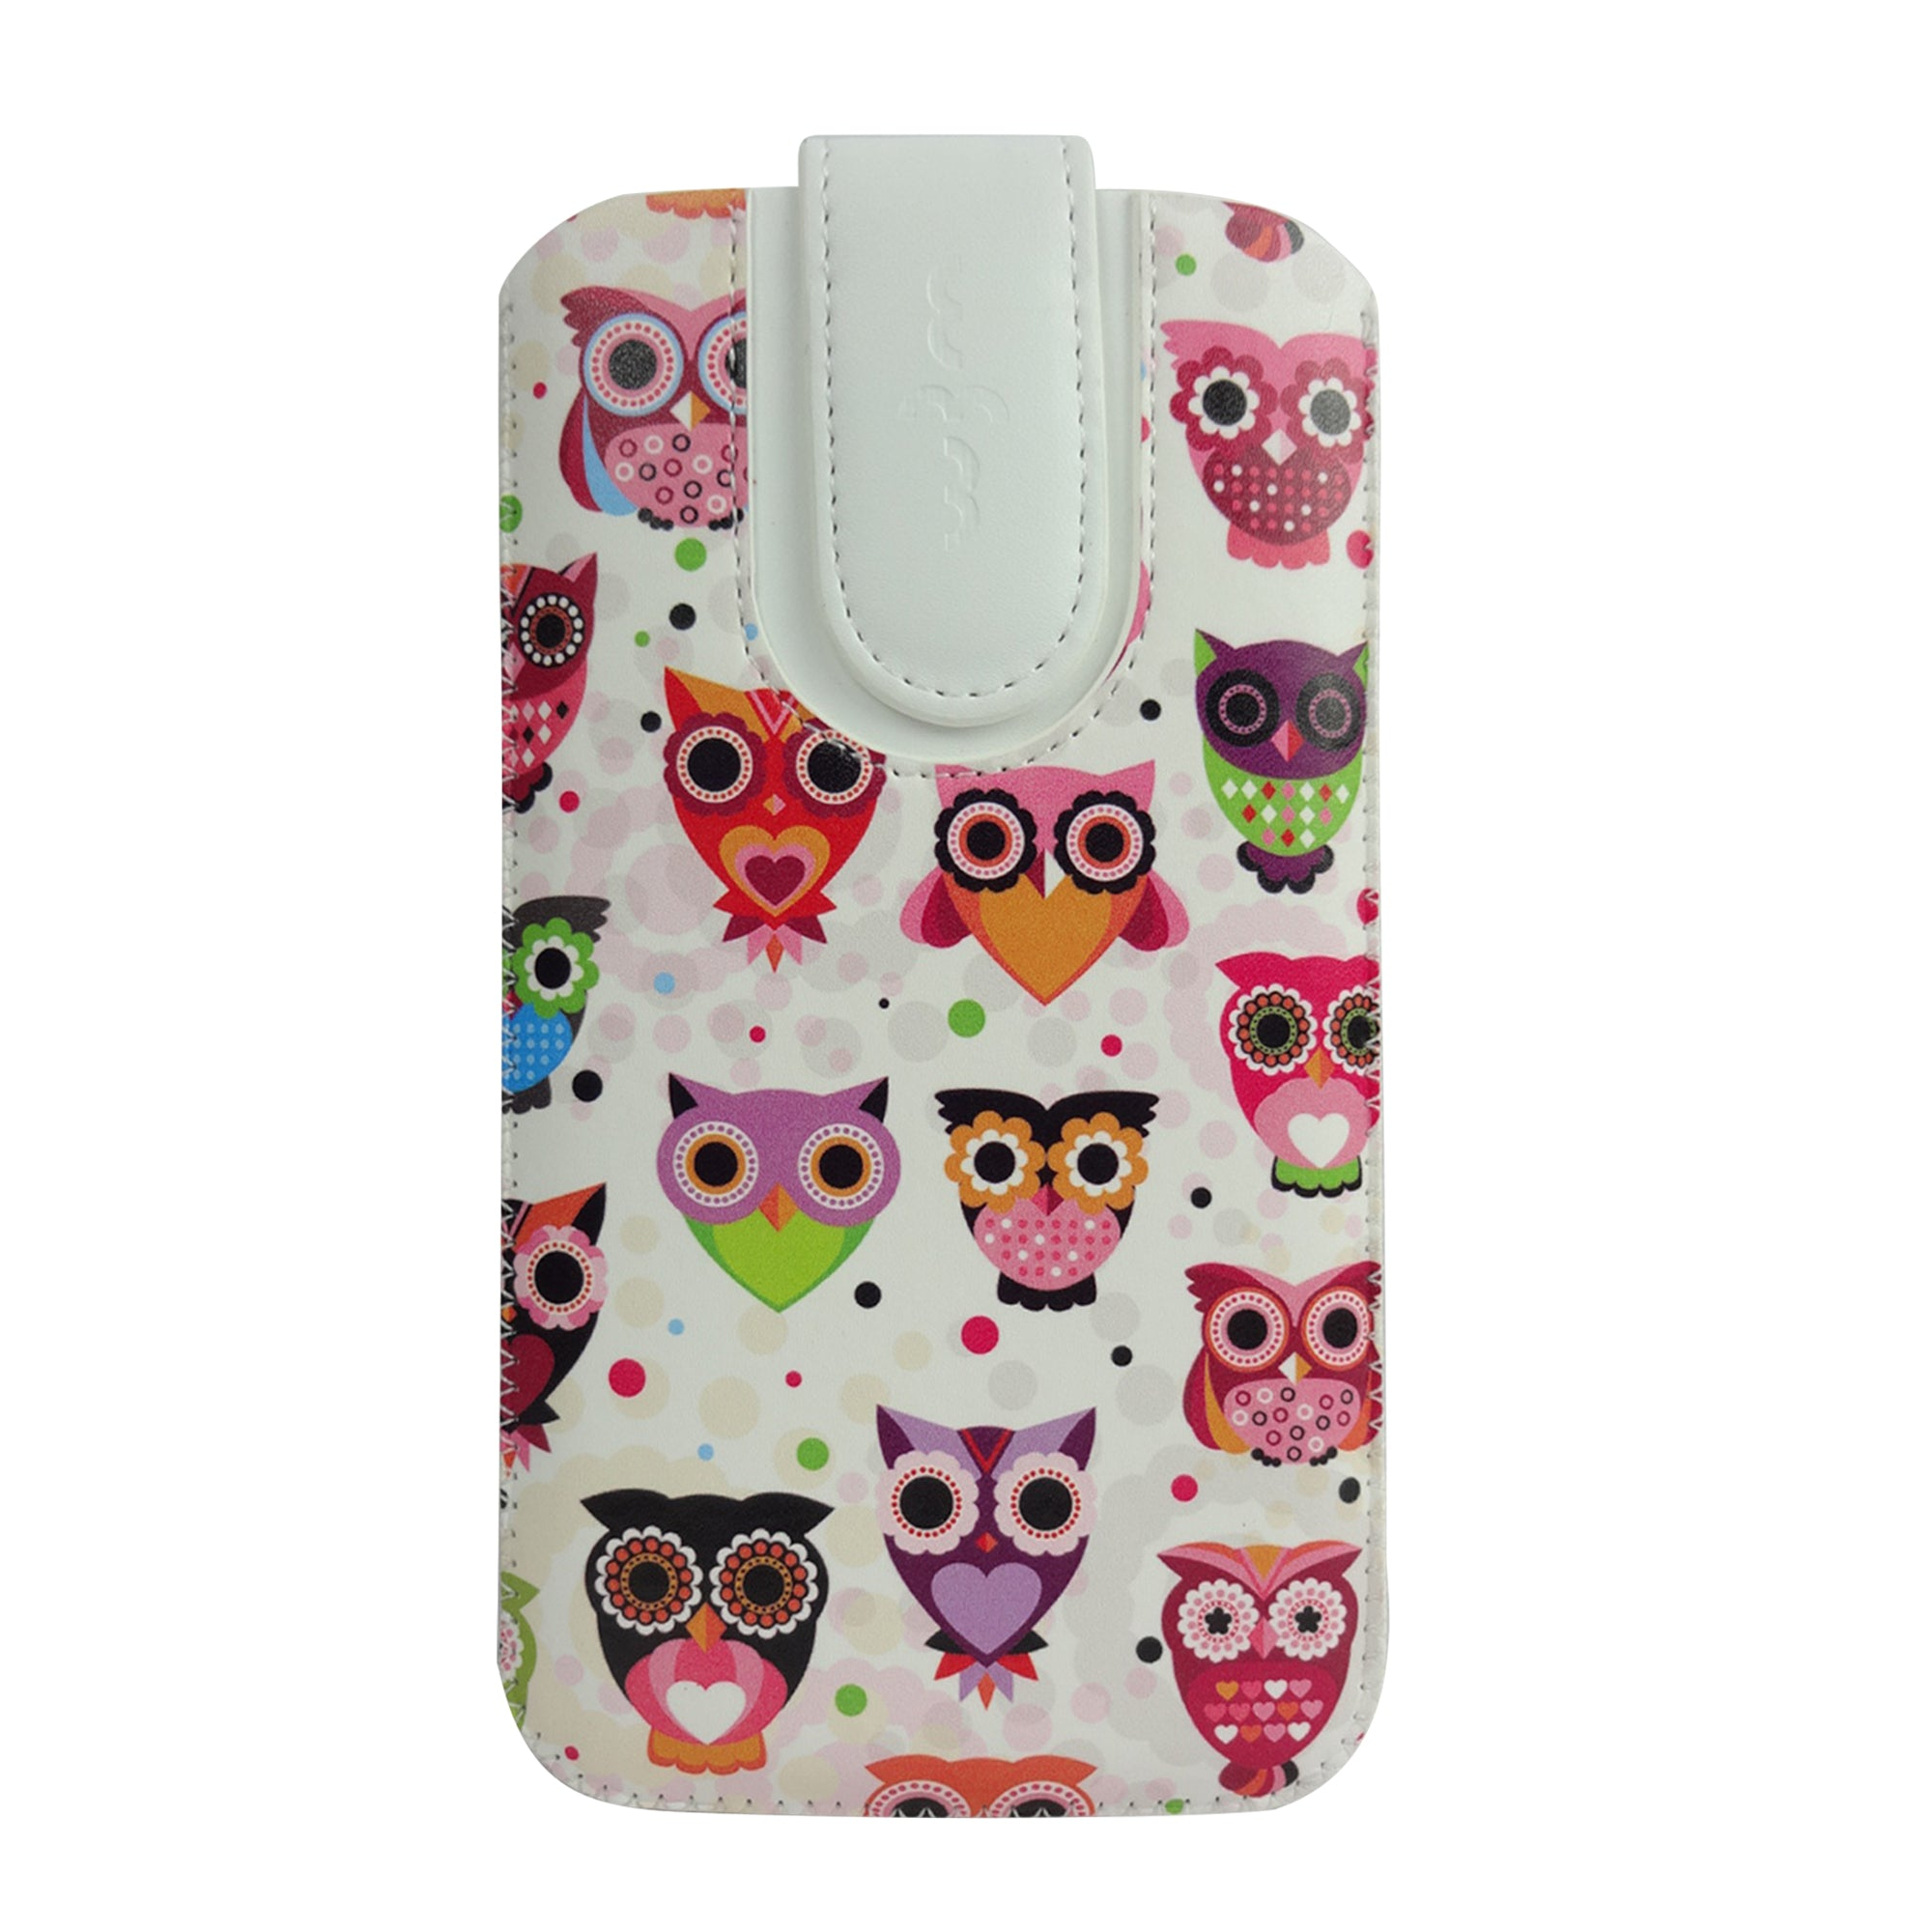 Universal Phone Pouch - Multi Owl